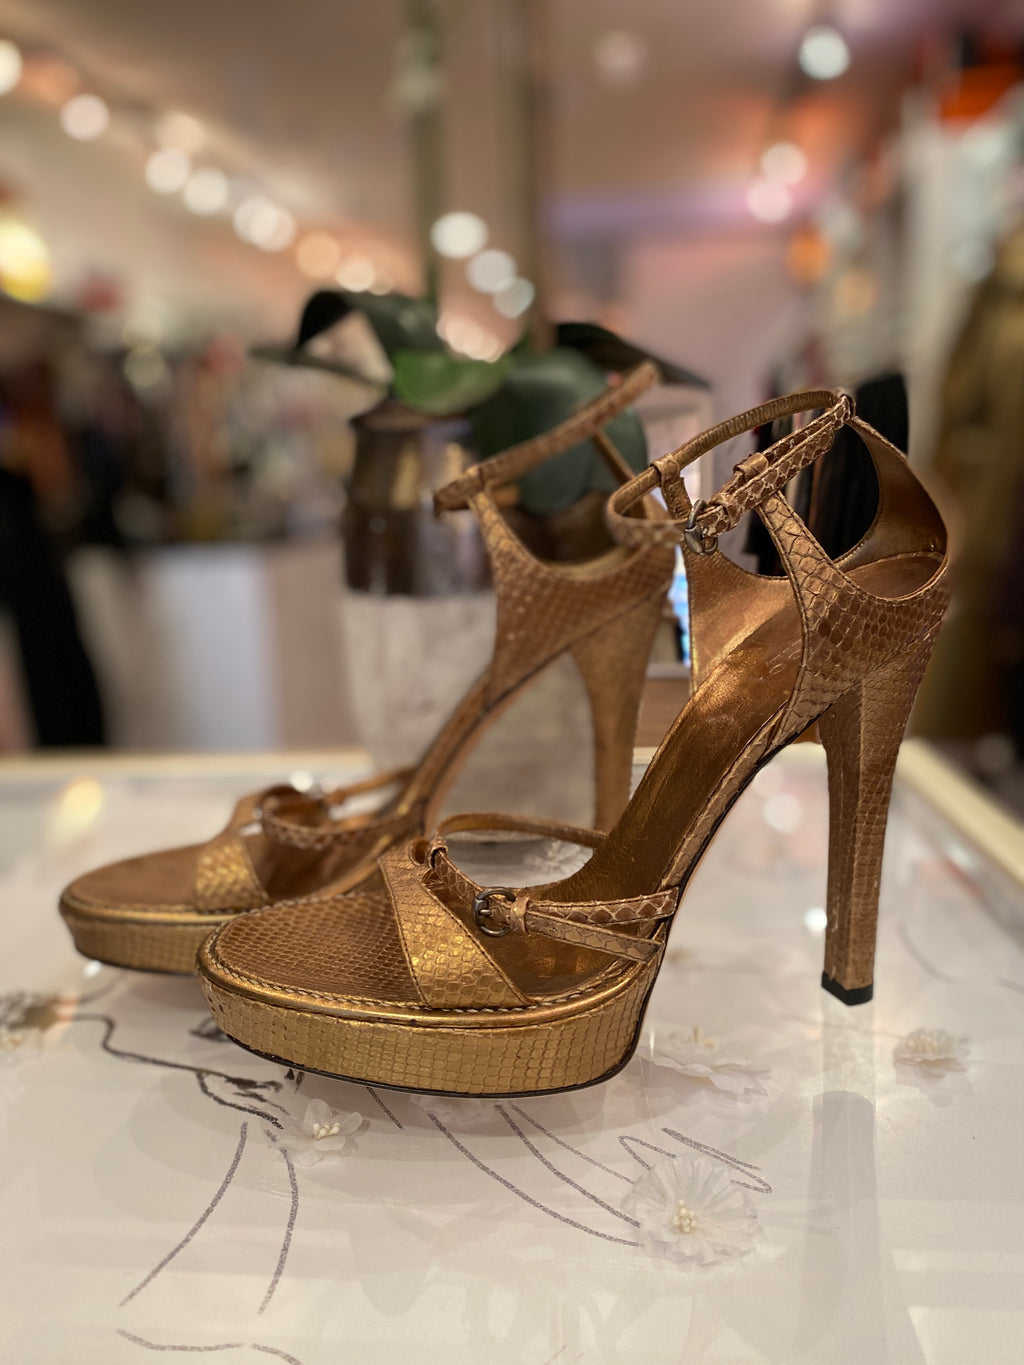 Gucci Bronze Snakeskin Sandals